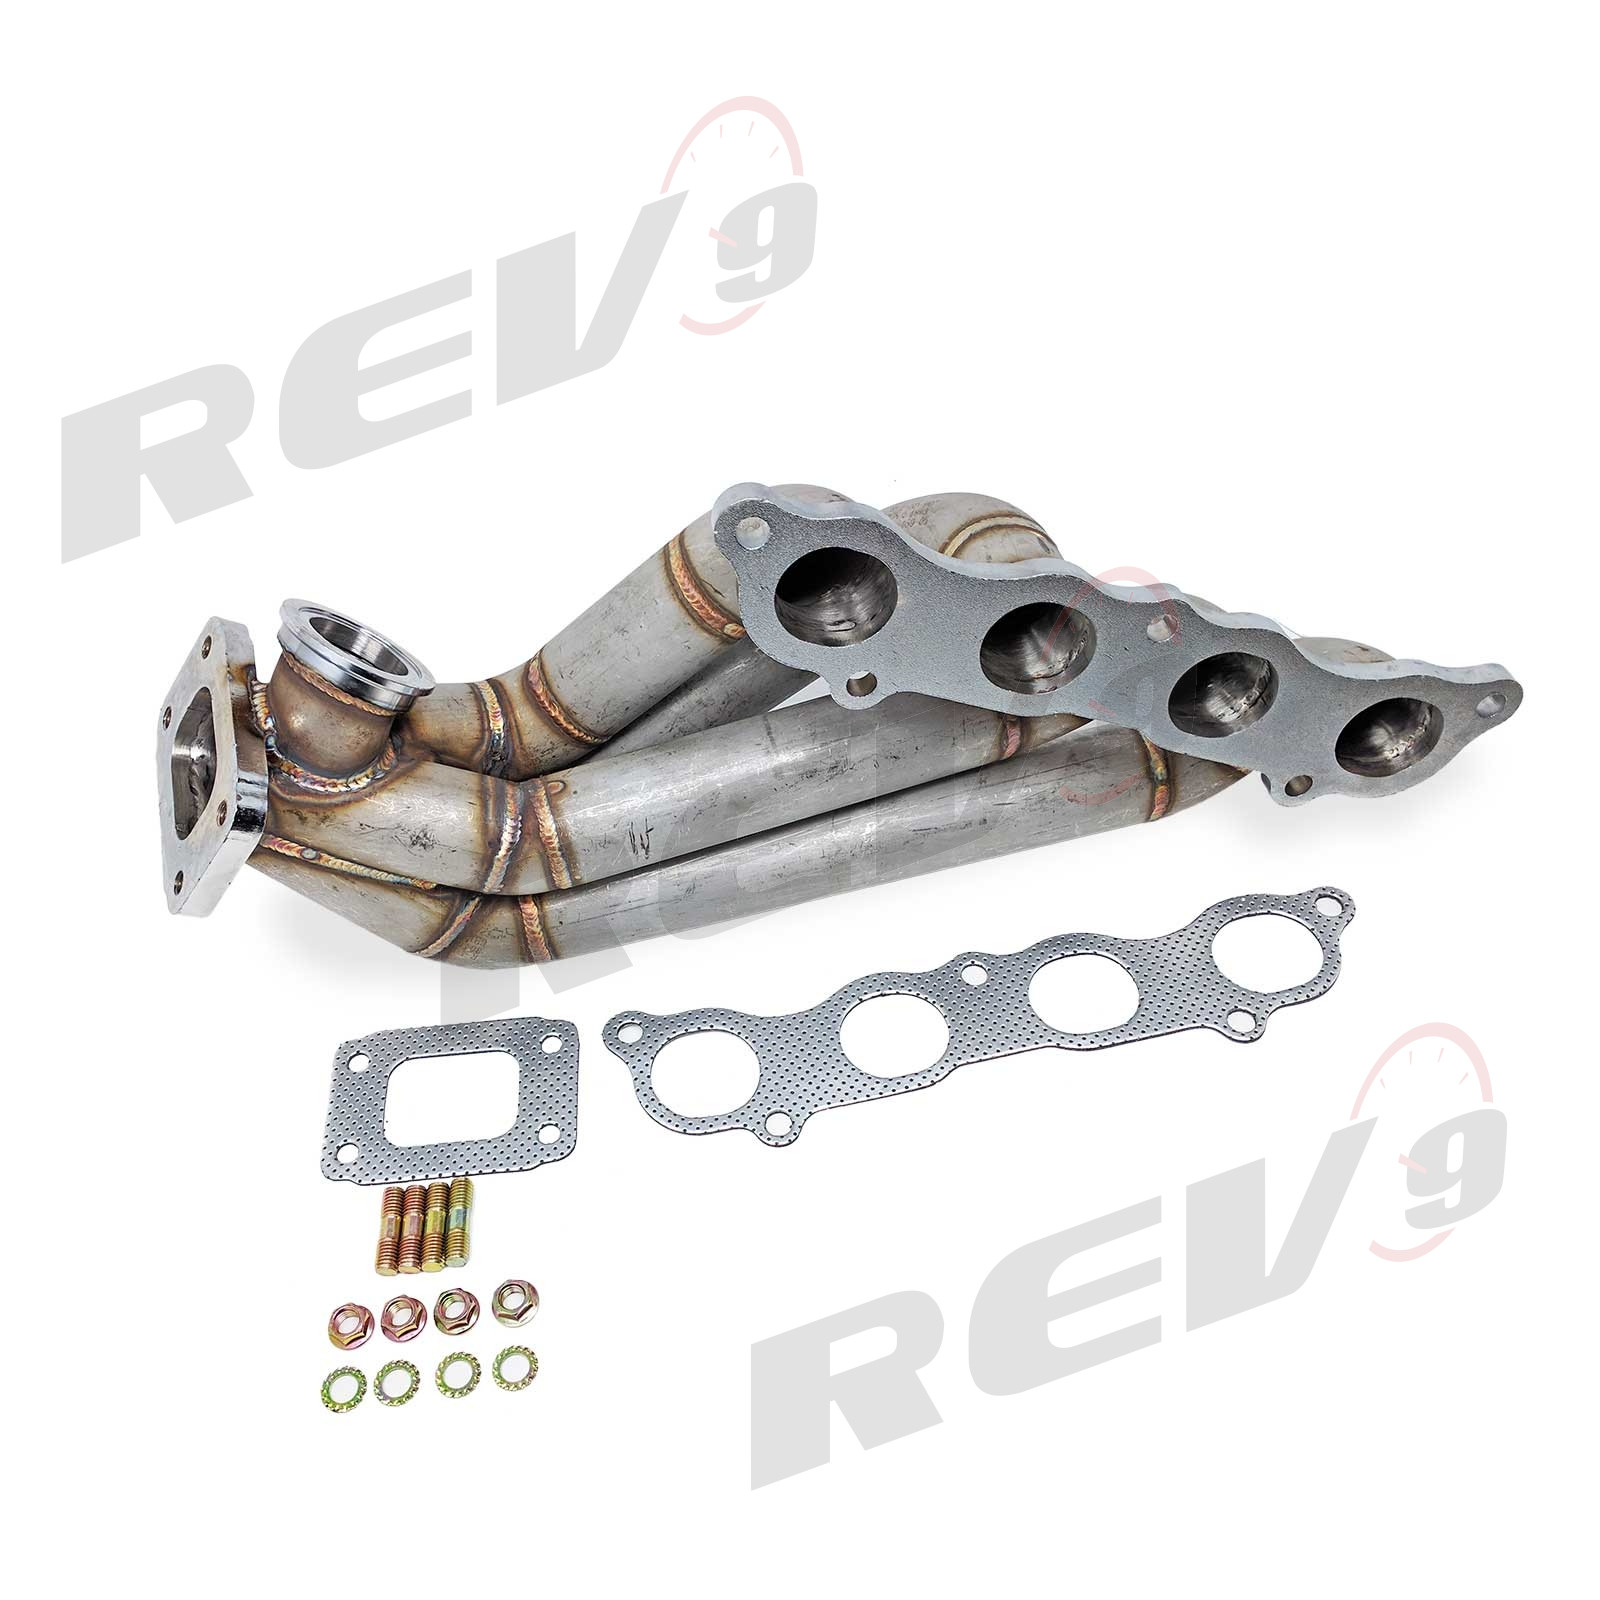 HP-Series Honda Civic / RSX K20 Side Winder Equal Length T3 Turbo Manifold